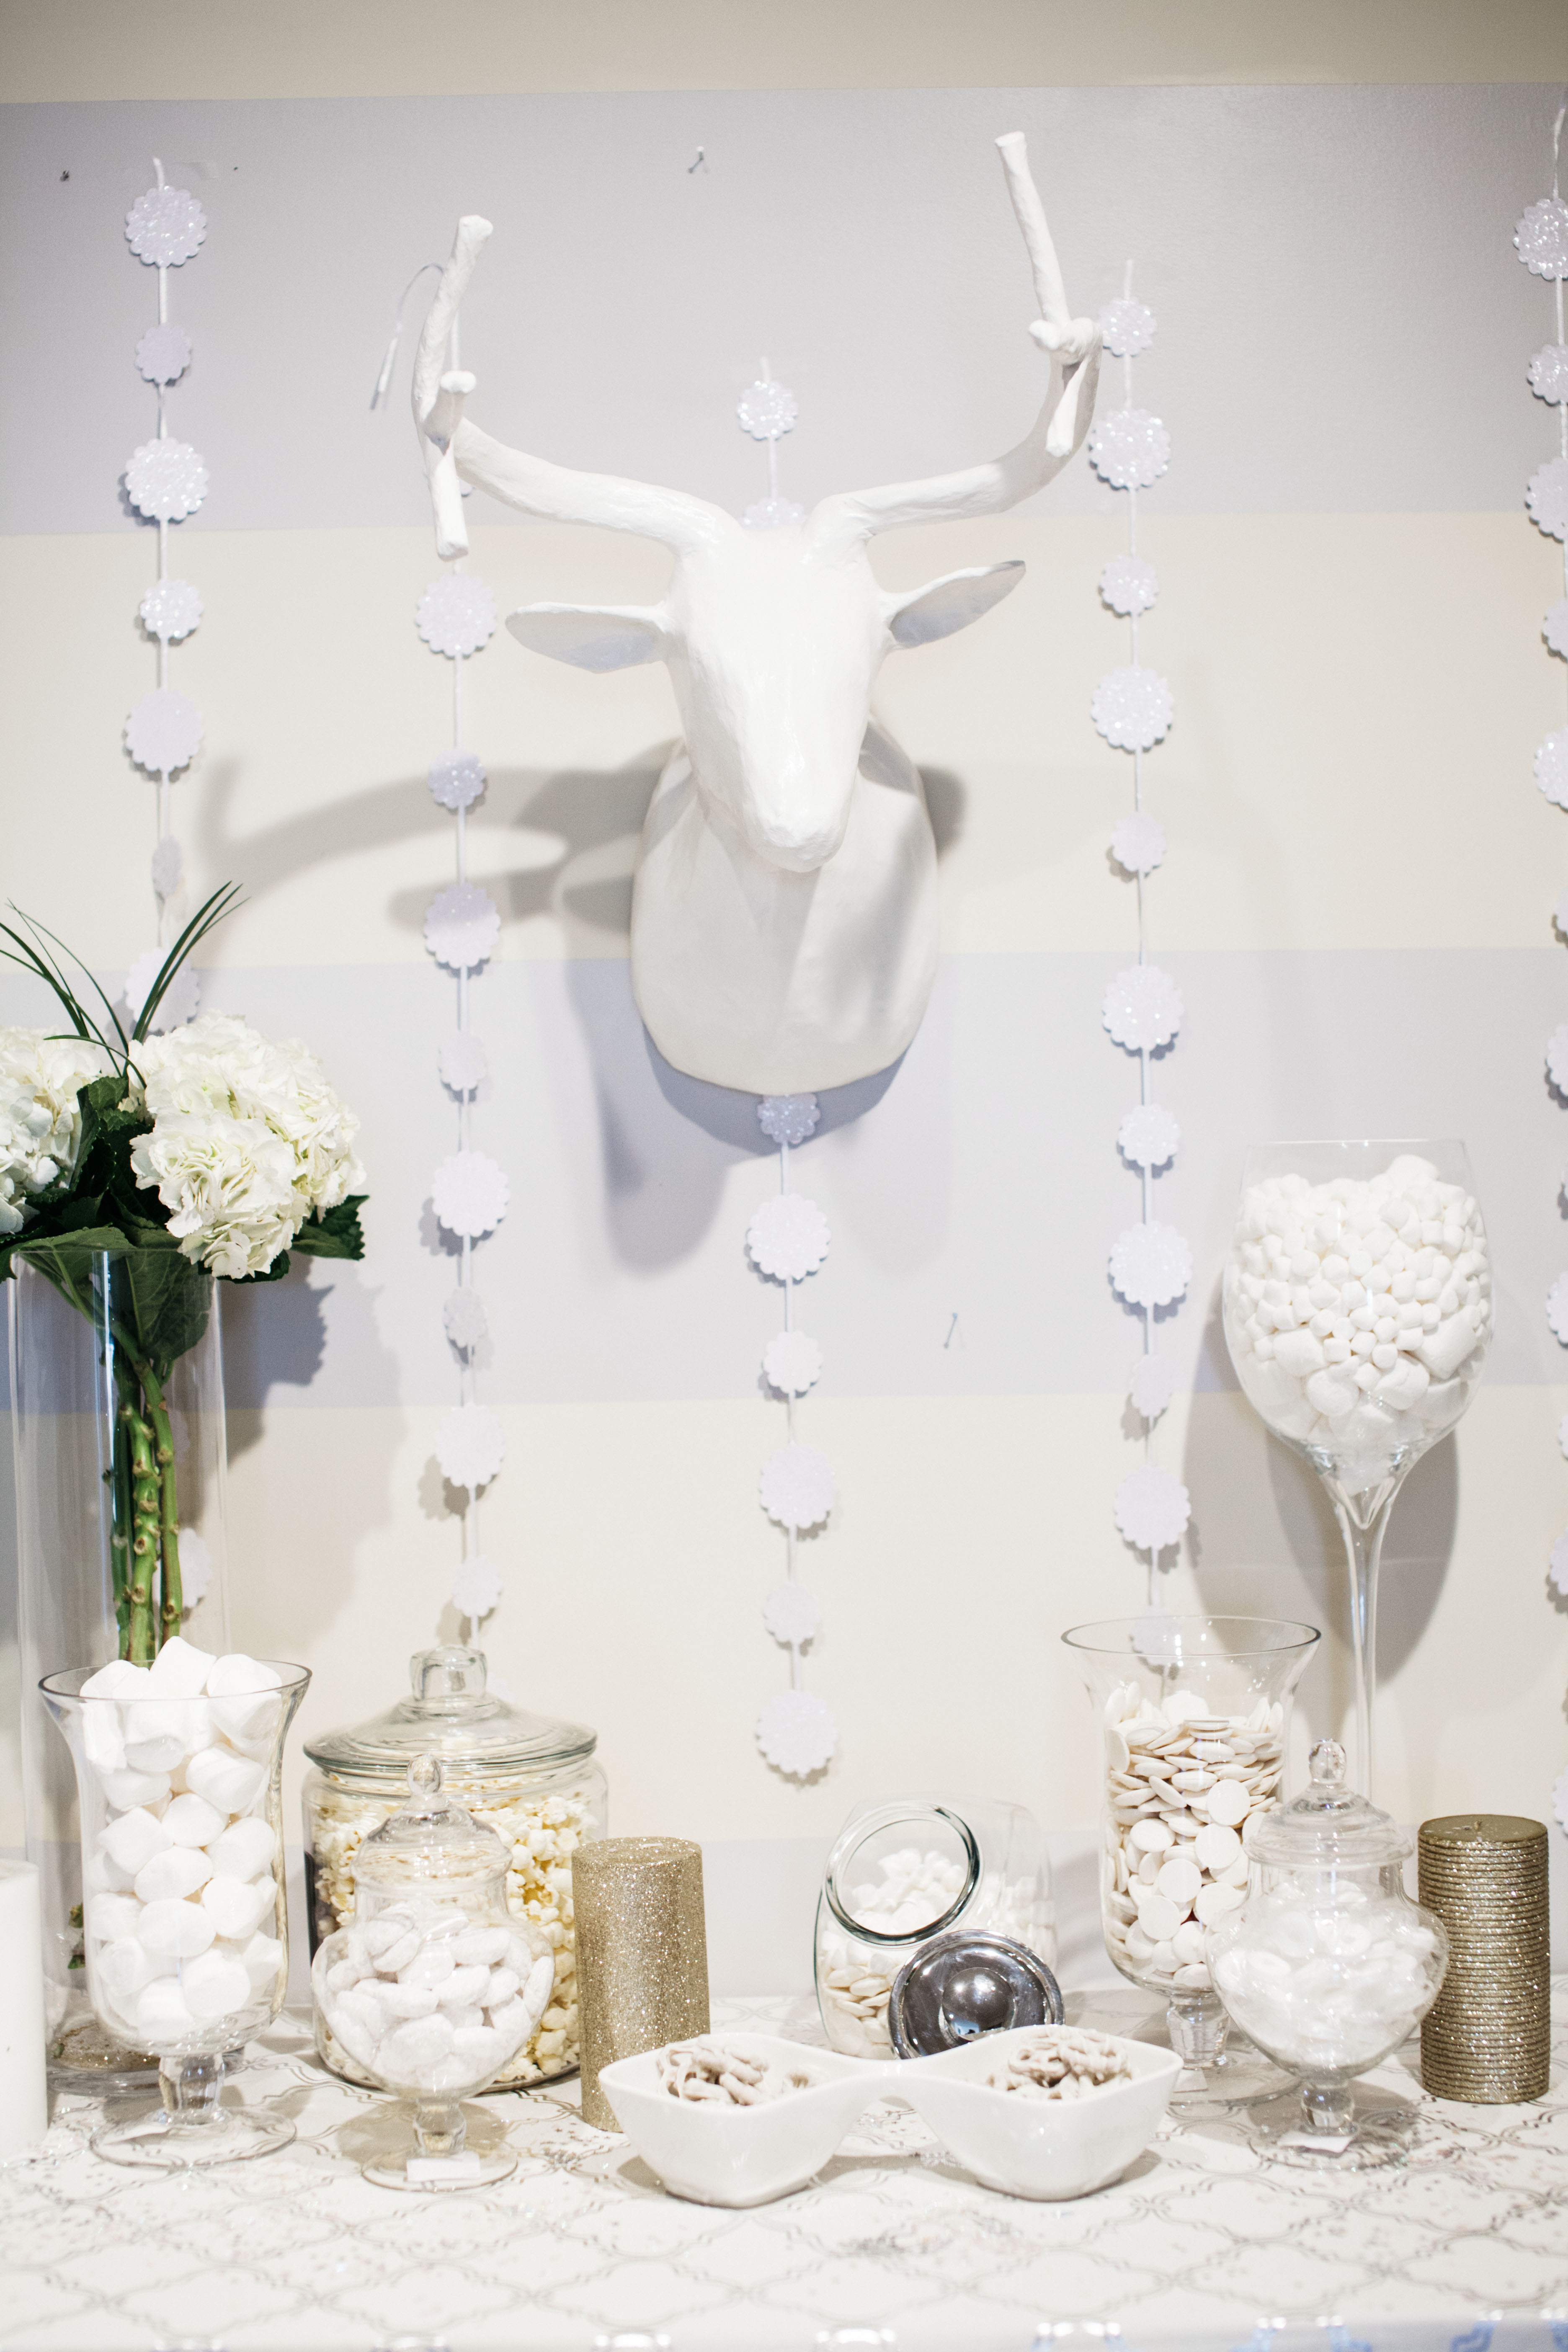 The Chic Series Winter White Party Decor